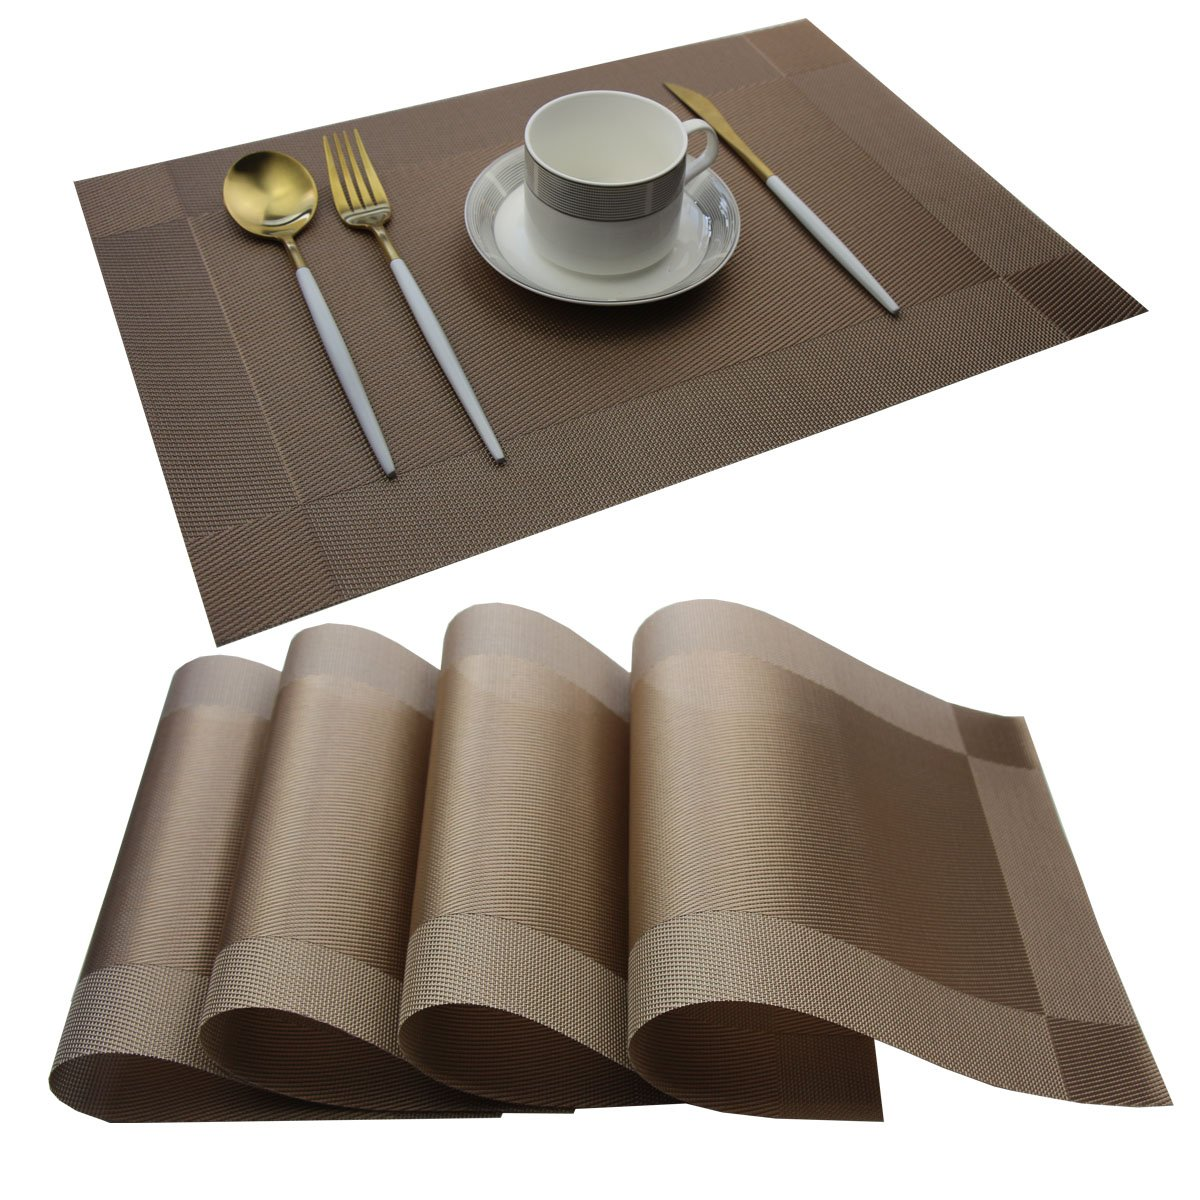 Bright Dream Placemats Washable PVC Placemats Plastic Wipe Clean for Kitchen Table Stain-resistand Woven Vinyl Wine Table Mats 12x18 inches Set of 4(Champagne)